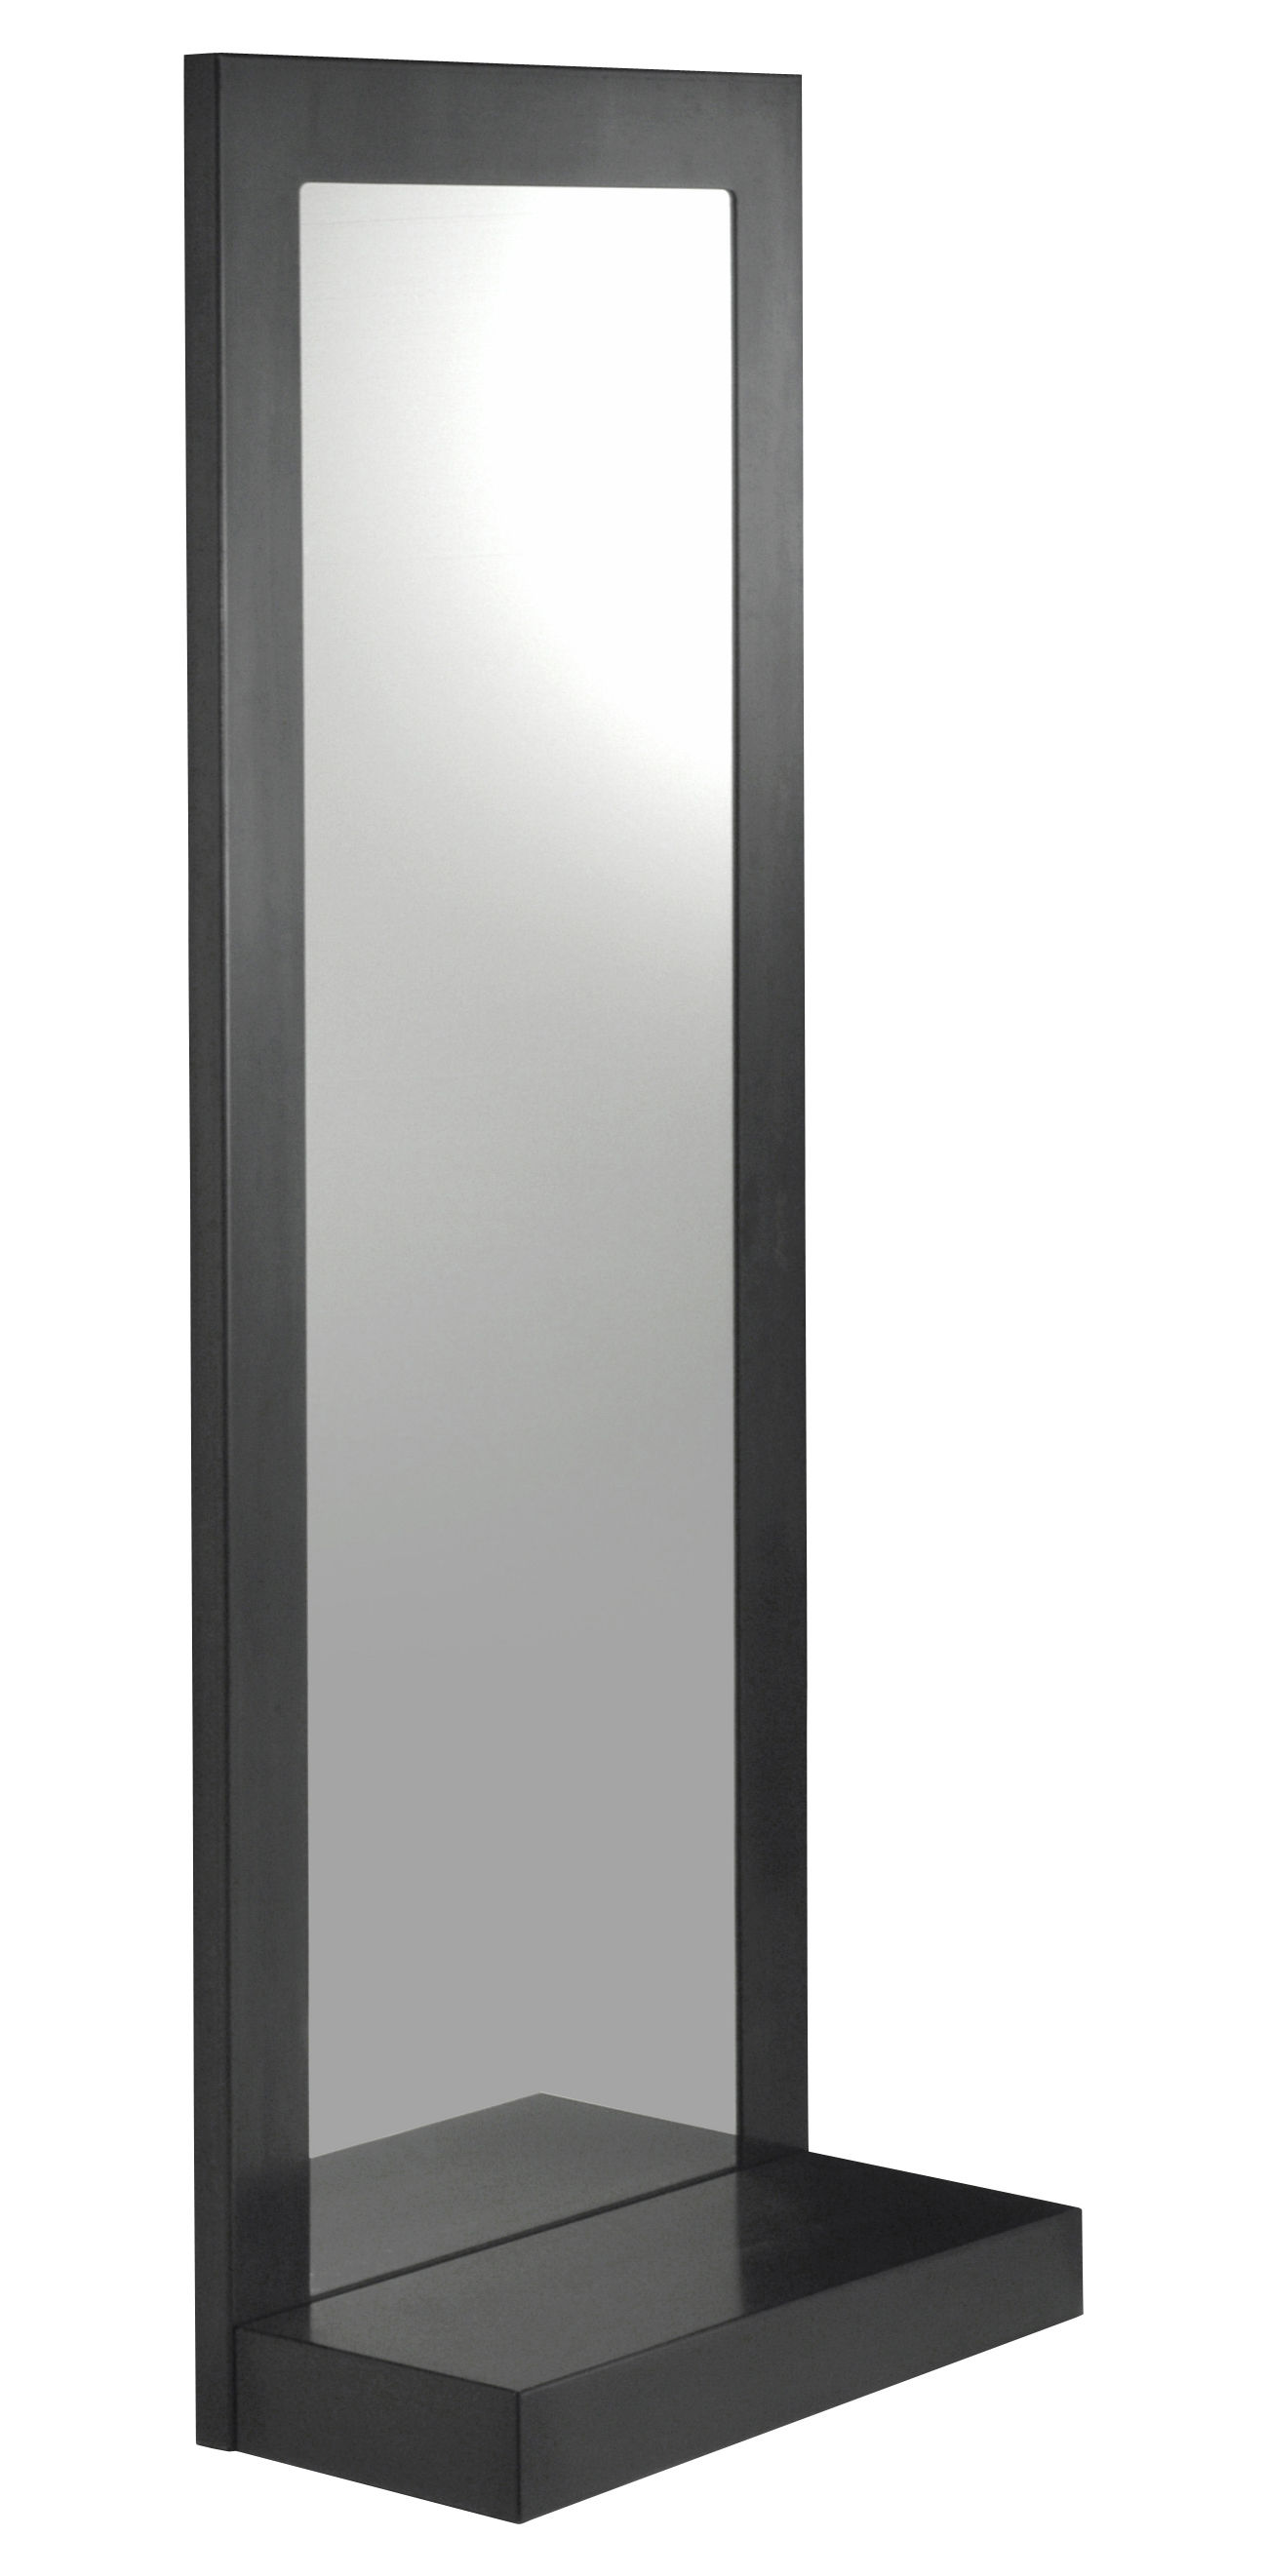 Furniture - Mirrors - Frame Wall mirror by Zeus - 180 x 70 cm - Phosphated steel